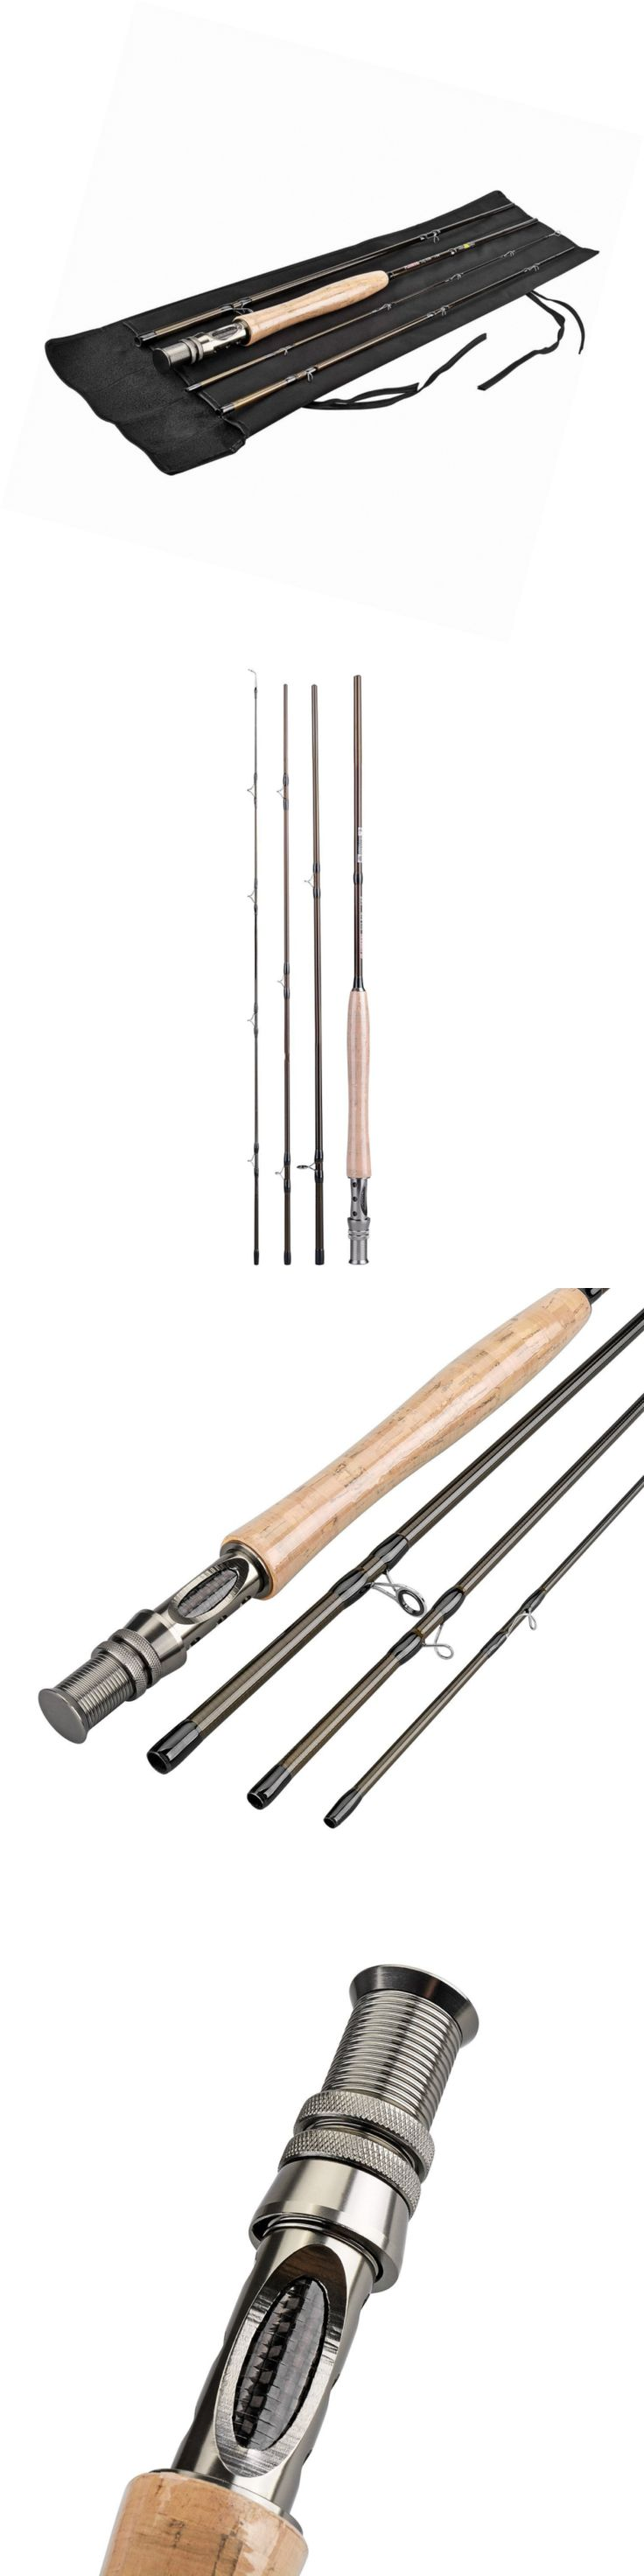 17 best ideas about fishing rods and reels on pinterest for Plusinno fishing rod